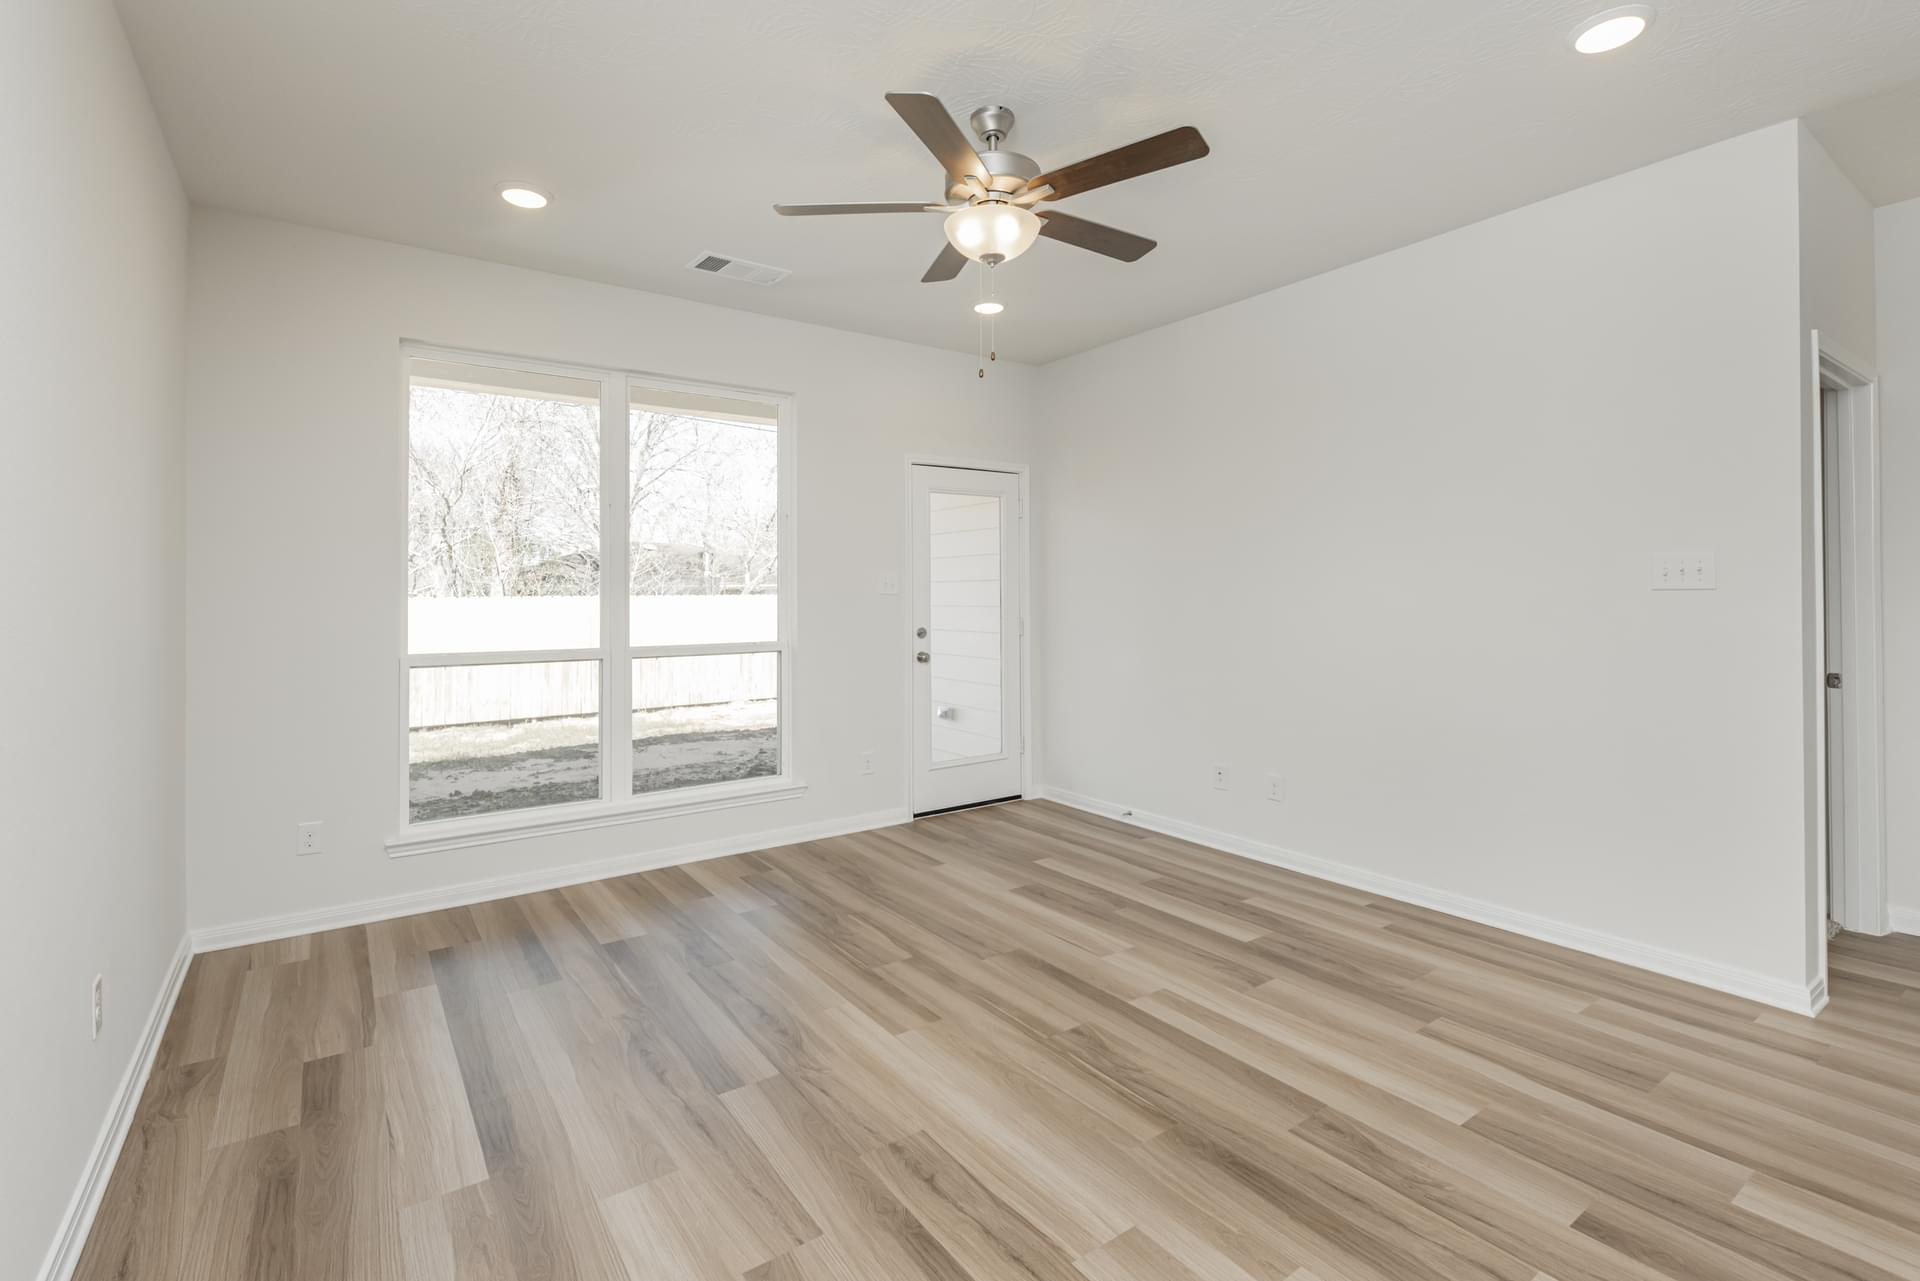 The Bryson New Home in College Station, TX